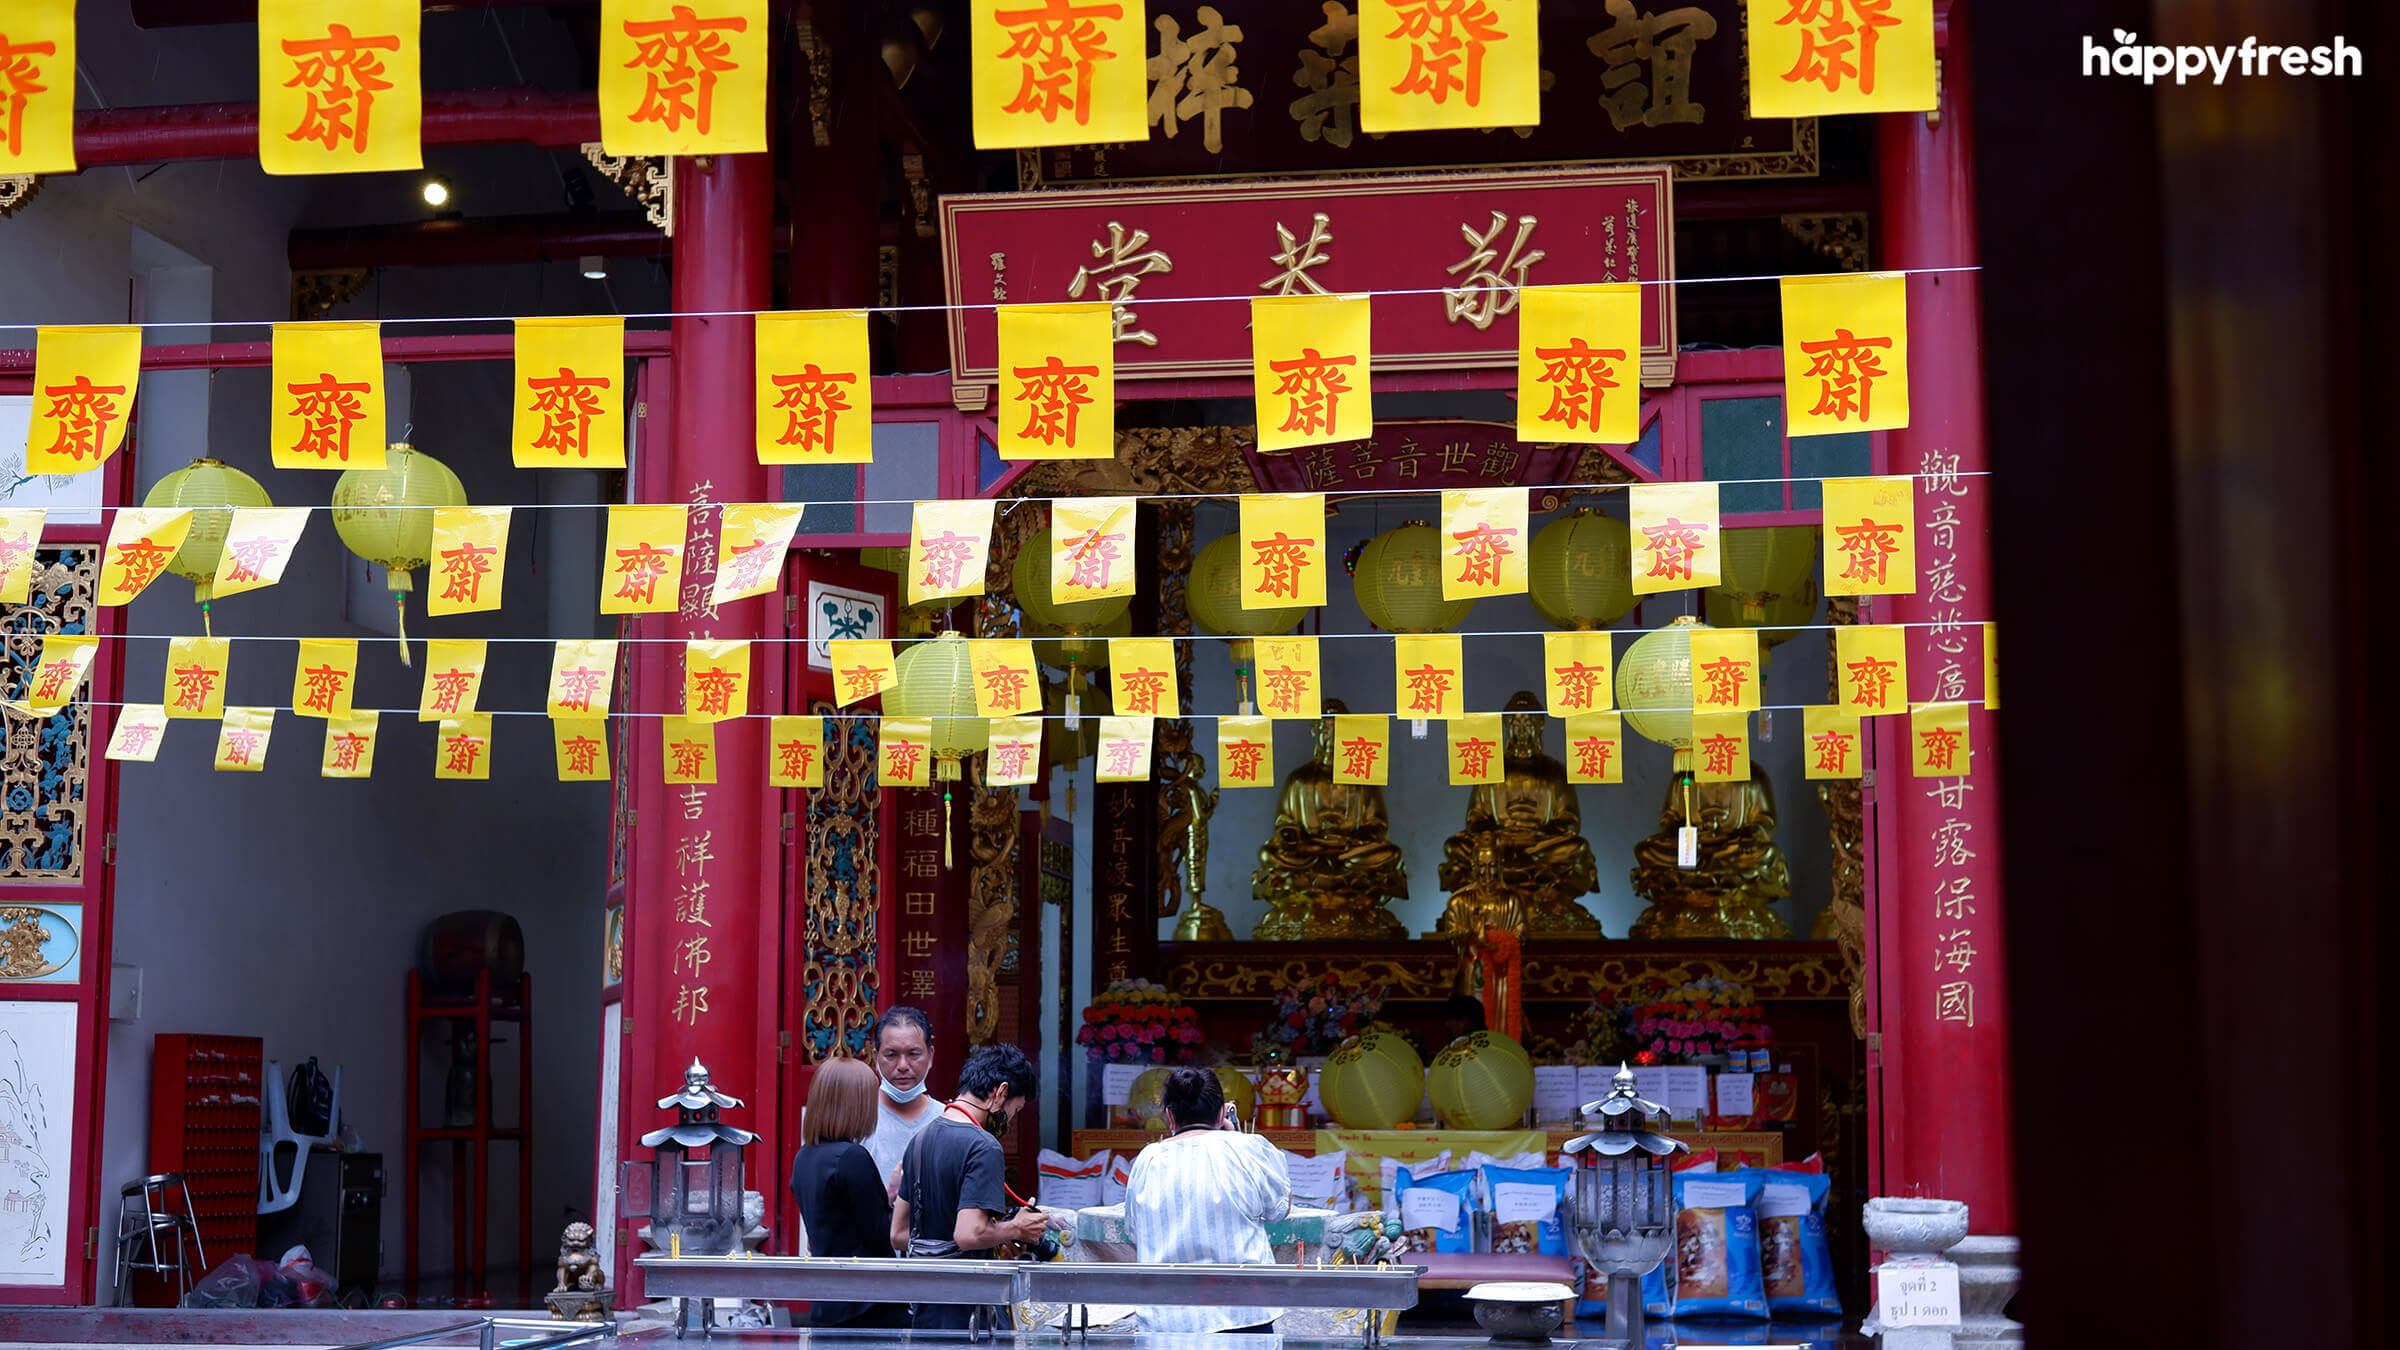 HappyFresh_Visit_6_Chinese_Shrines_In_Chinatown_Kwang_Tung_Canton_Shrine_3